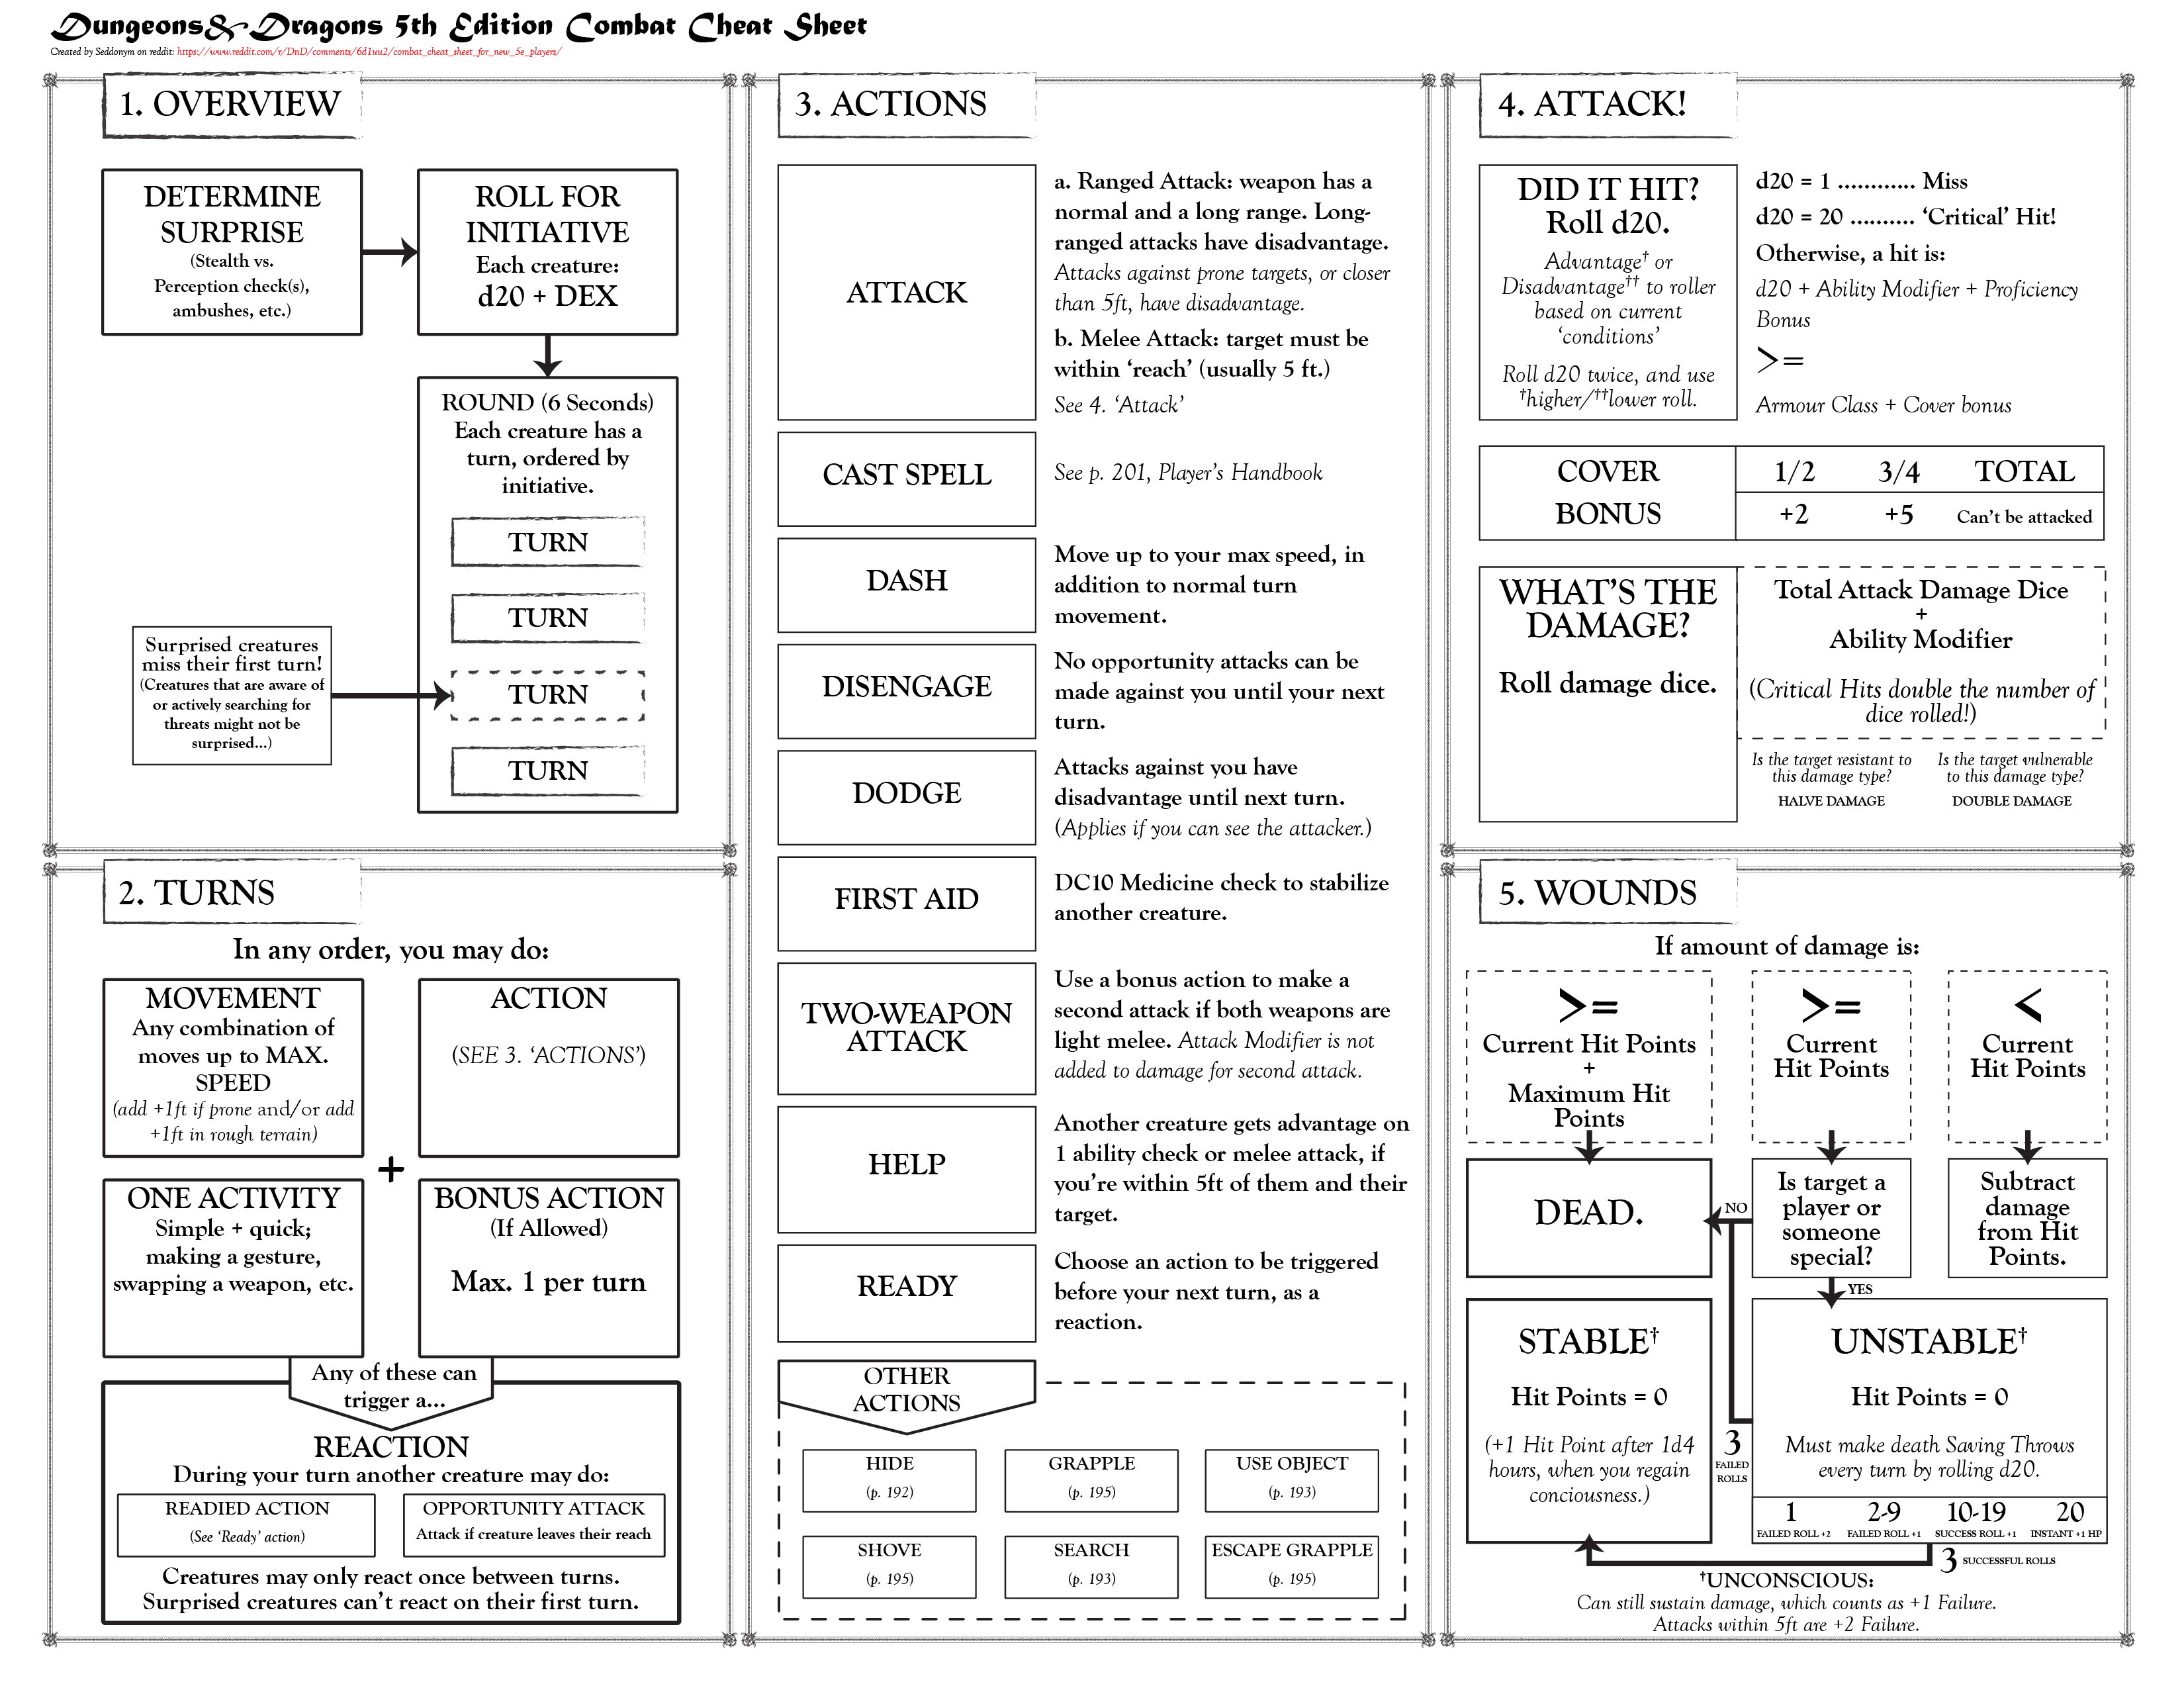 Combat Cheat Sheet For New 5e Players